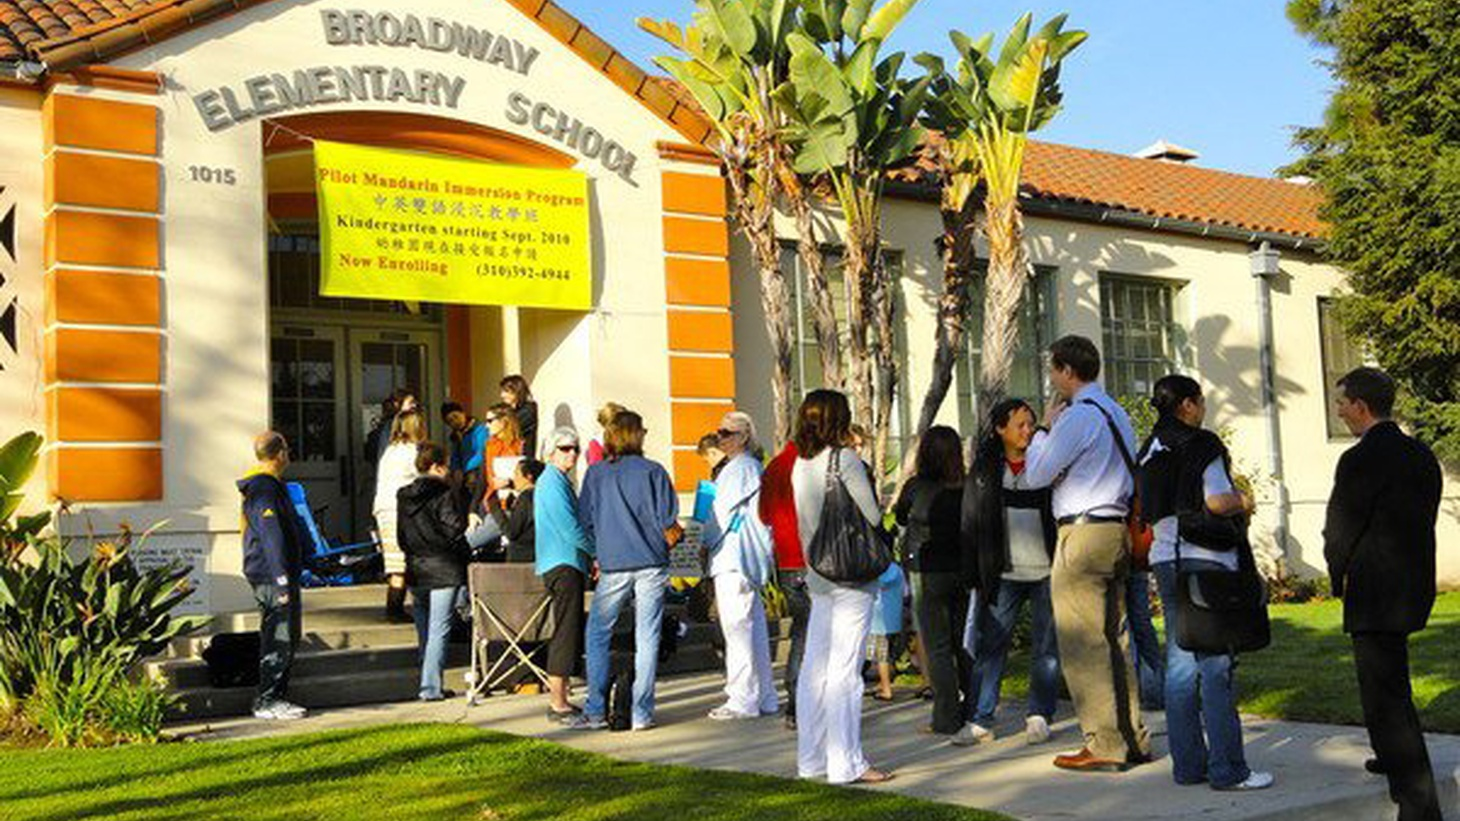 Parental demand caused a Chinese language immersion program to outgrow its campus in Venice on LA's Westside. Plans were made to expand it in nearby Mar Vista. Residents there said the program was okay, but didn't want the traffic and other consequences in their backyard. LA Unified's final solution: cut the program in half.